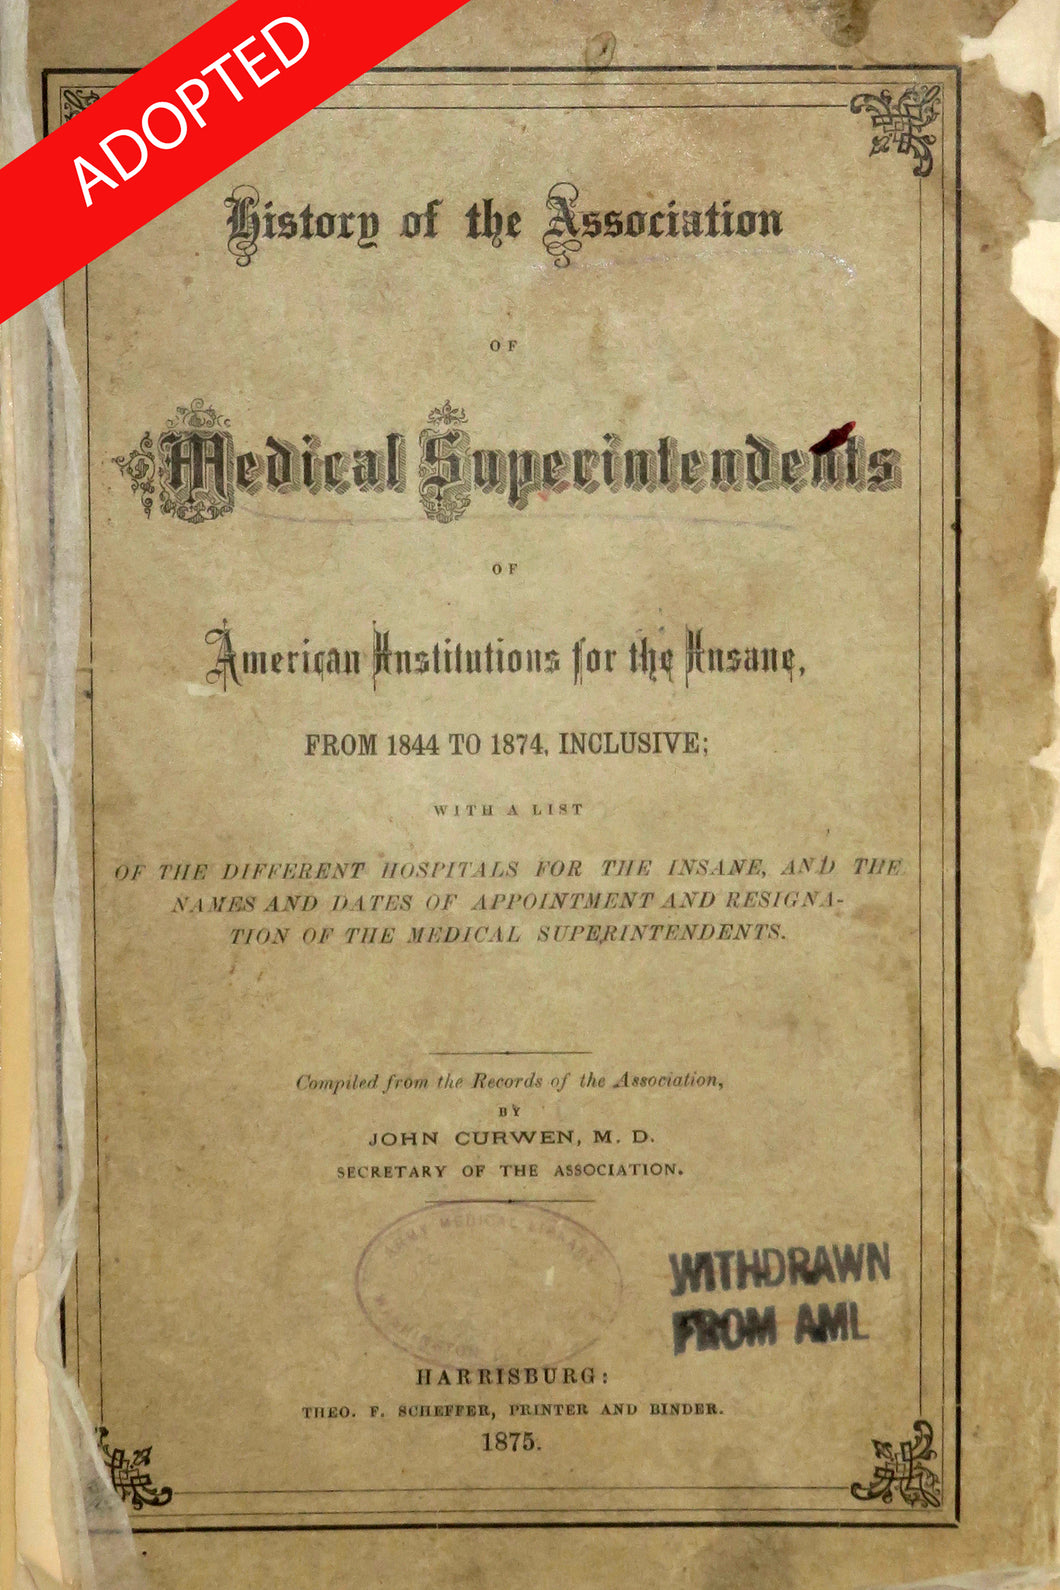 History of the Association of Medical Superintendents of American Institutions for the Insane, from 1844 to 1874, inclusive.